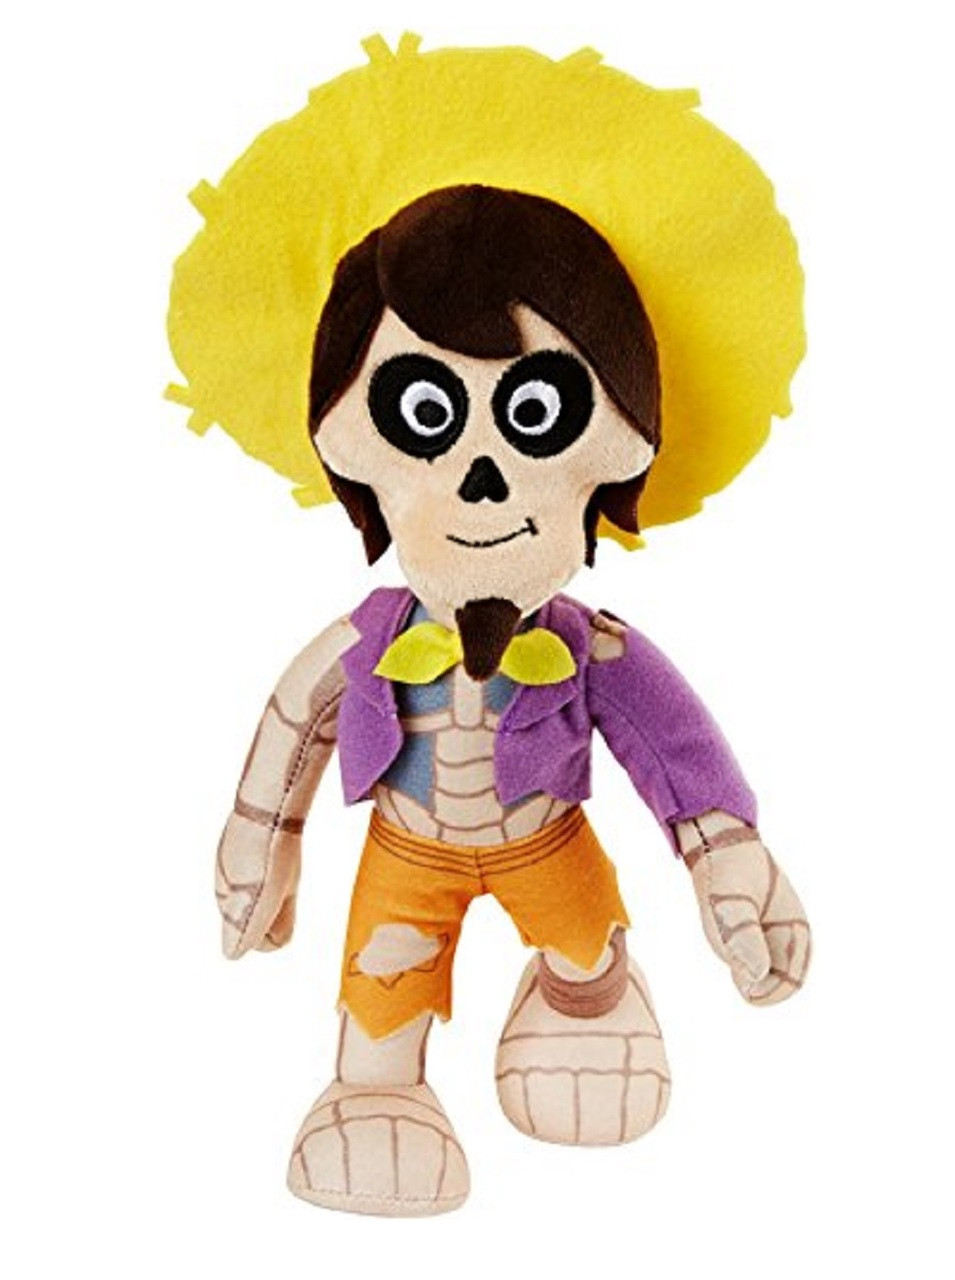 Plush Toy - Coco - Hector - 8 Inch